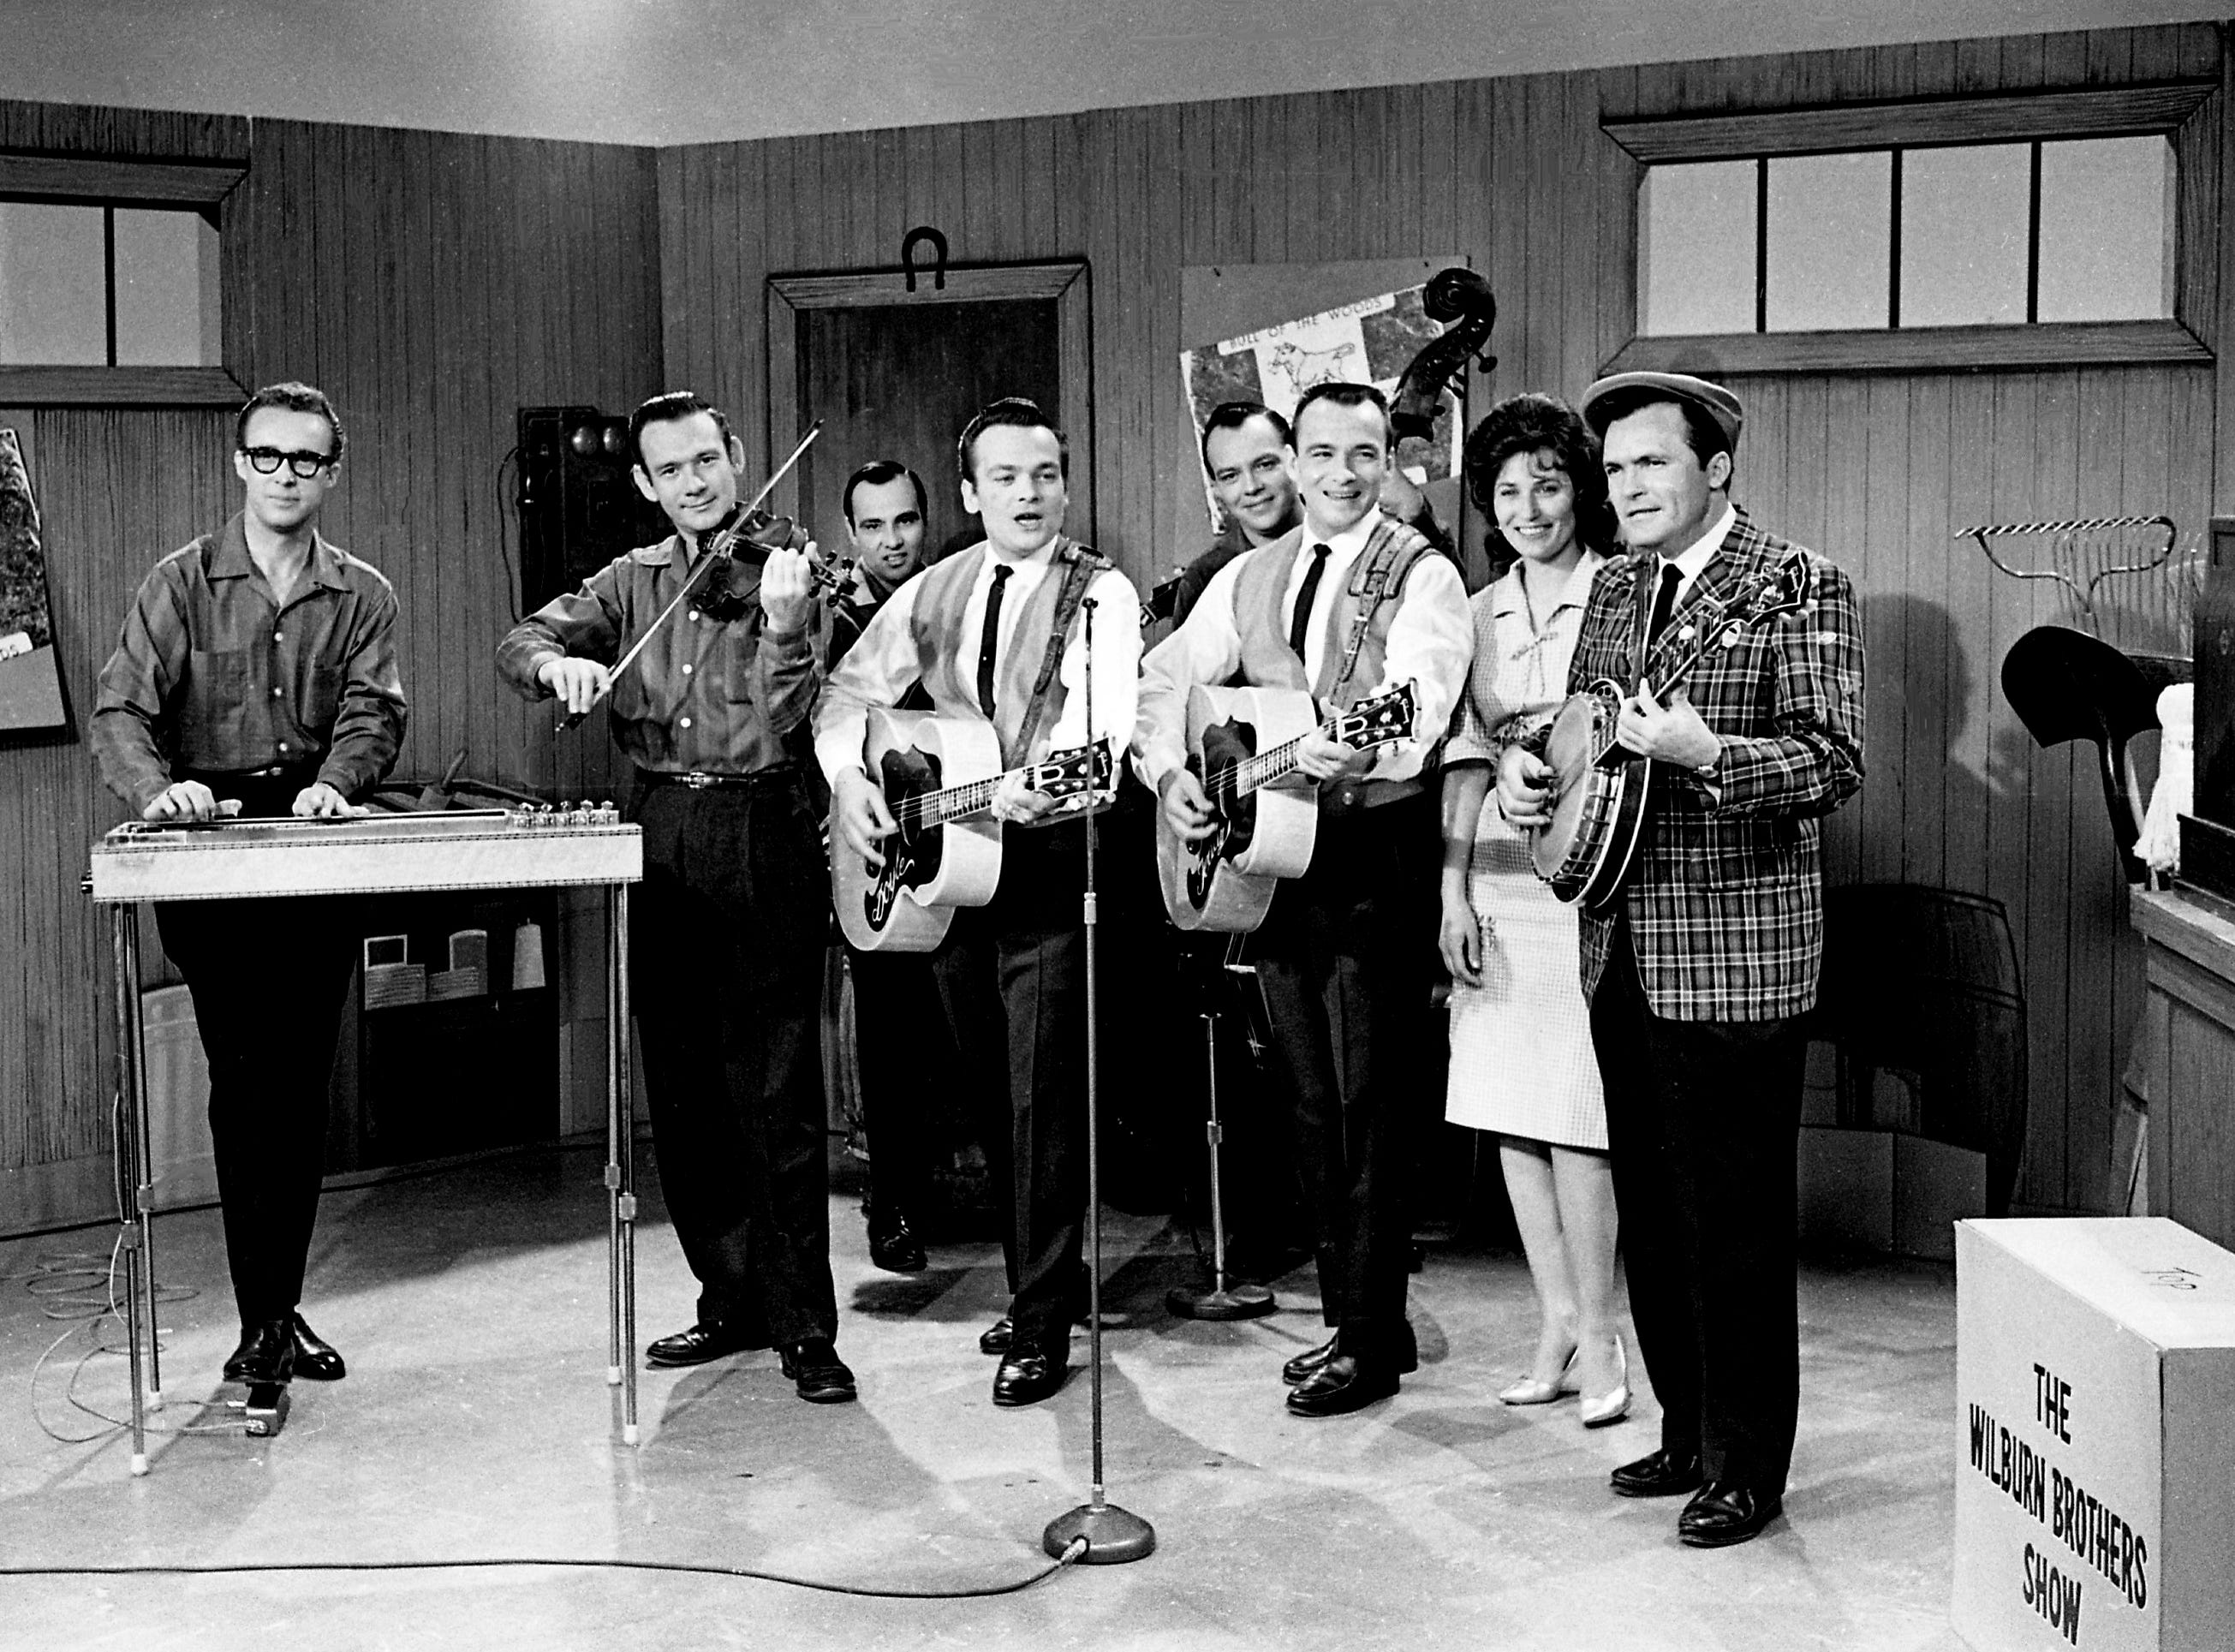 The Wilburn Brothers and their group make a tape of their new 30-minute weekly television show at WSM-TV on May 1, 1963. From left: they are Don Helms, steel guitar; Tommy Jackson, violin; Leslie Wilburn, rhythm guitar; singer Doyle Wilburn; Lester Wilburn, bass; singer Teddy Wilburn; singer Loretta Lynn; and Harold Morrison, banjo.